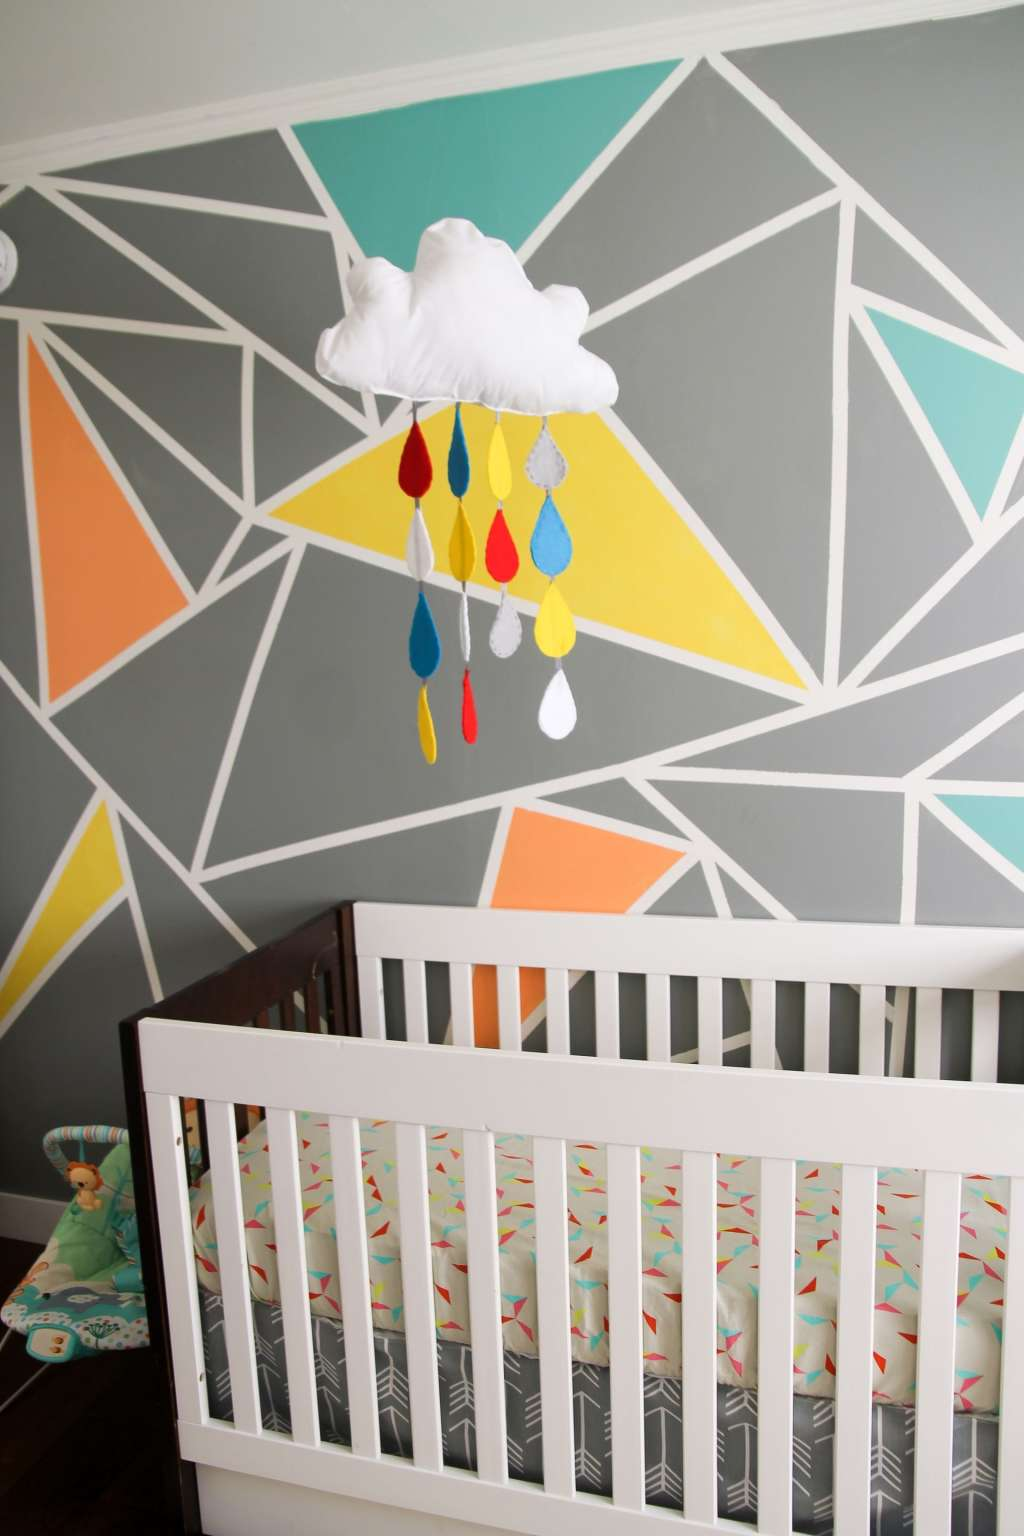 Archer's Colorful Nursery with Geometric Elements